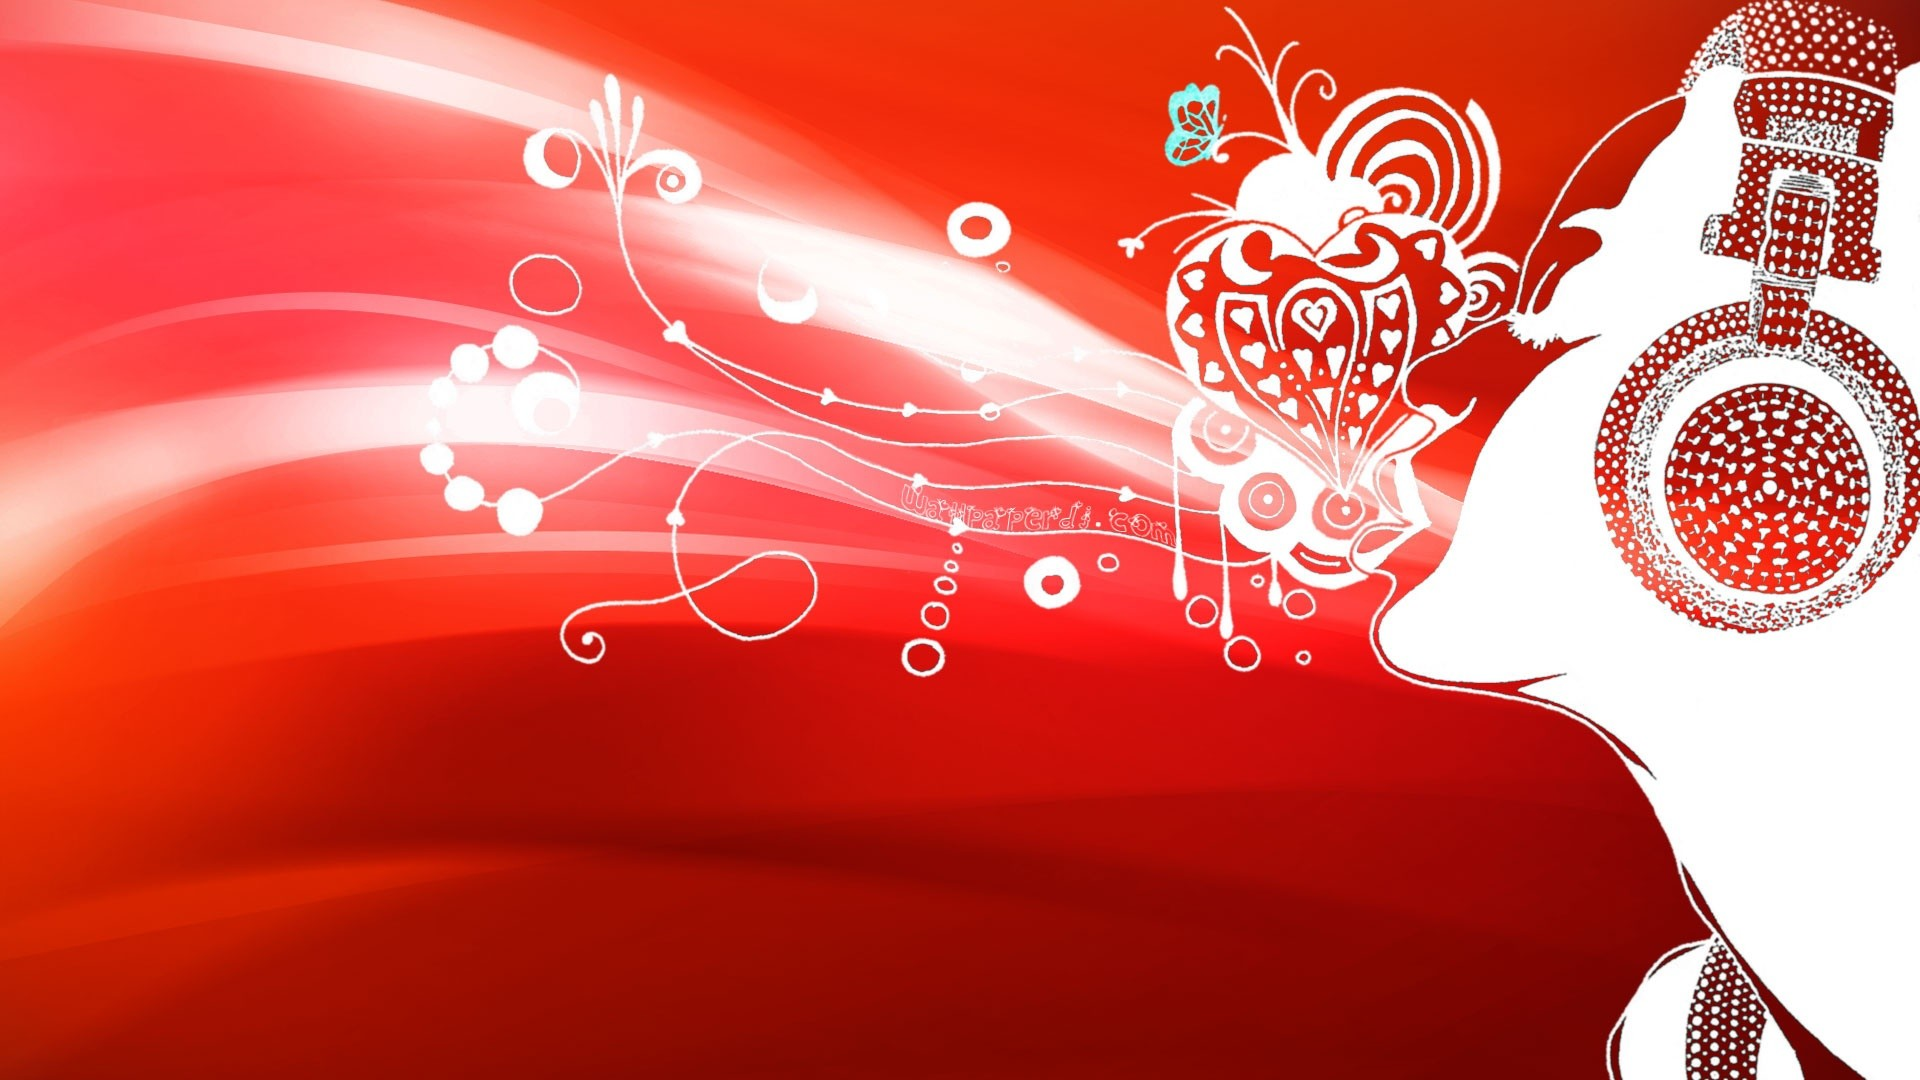 red music background hd wallpaper - photo #36